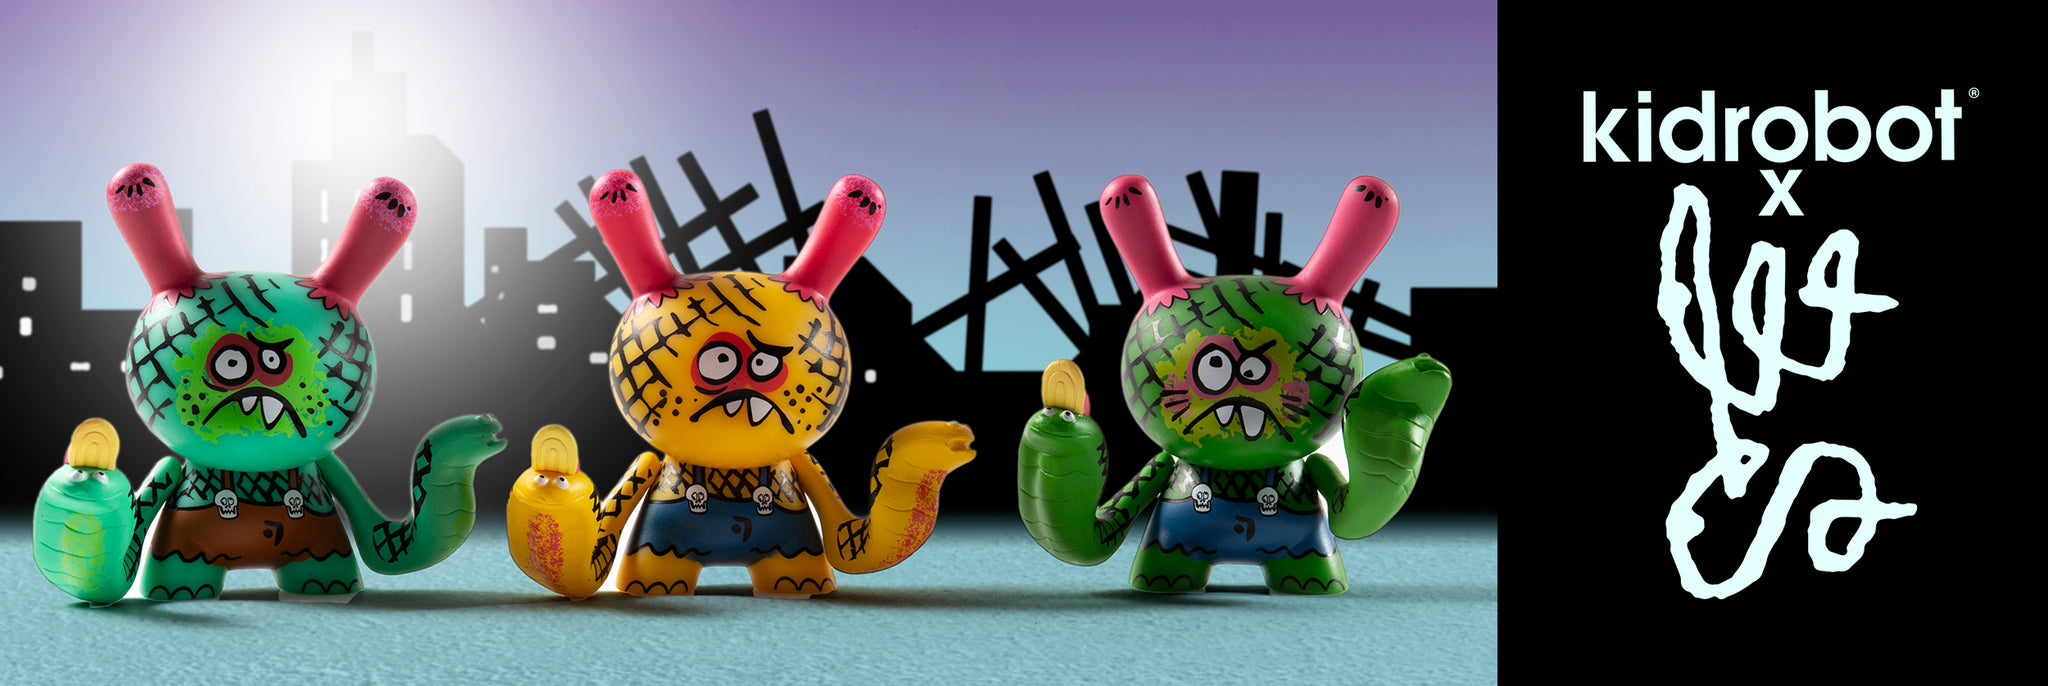 Bwana Spoons Art Toys, Dunny Art Figures by Kidrobot